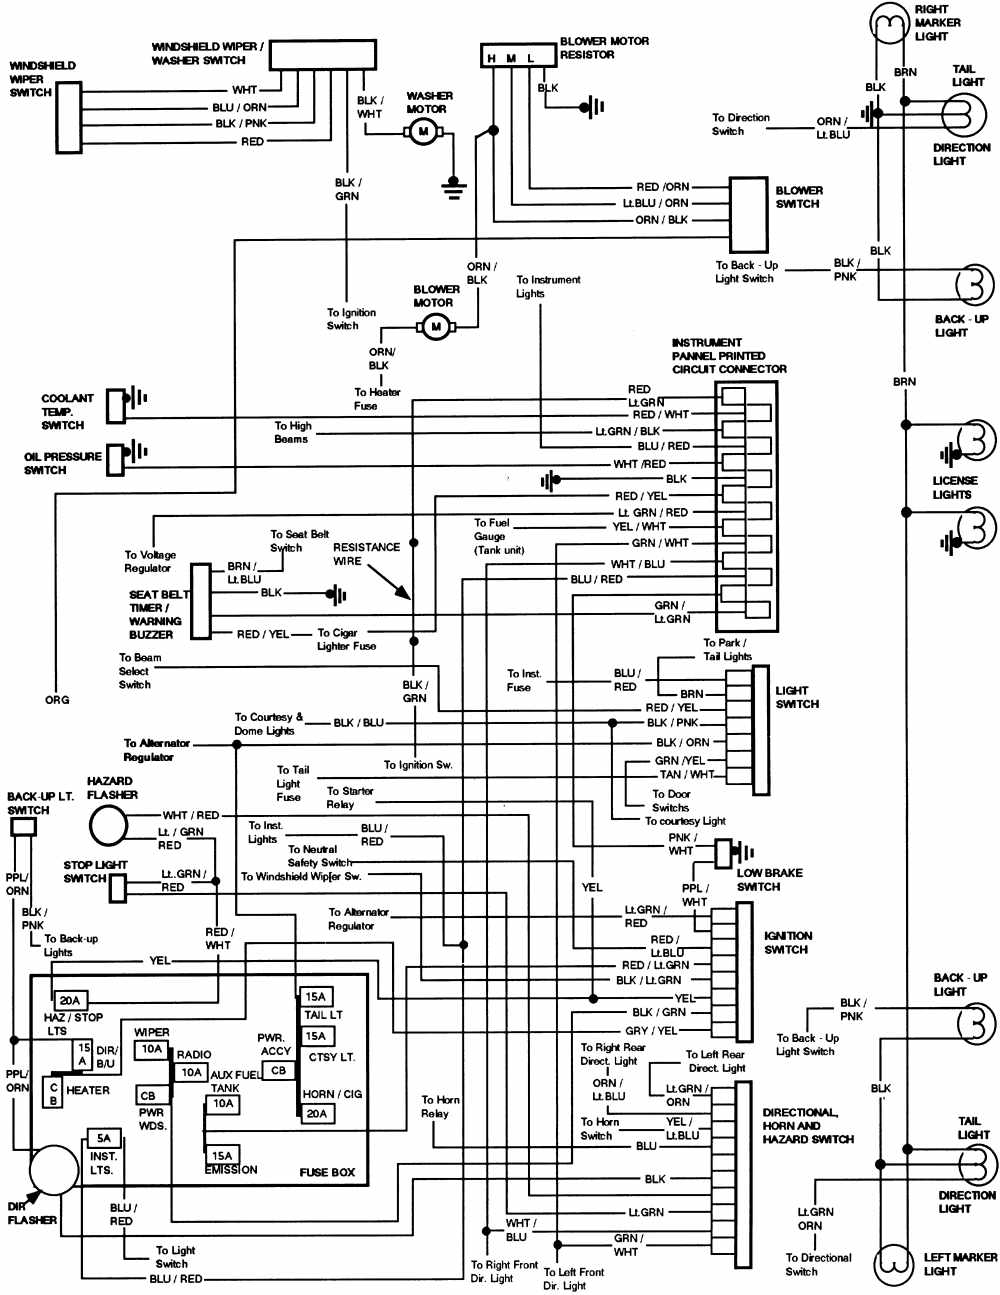 1992 chevy instrument cluster wiring diagram